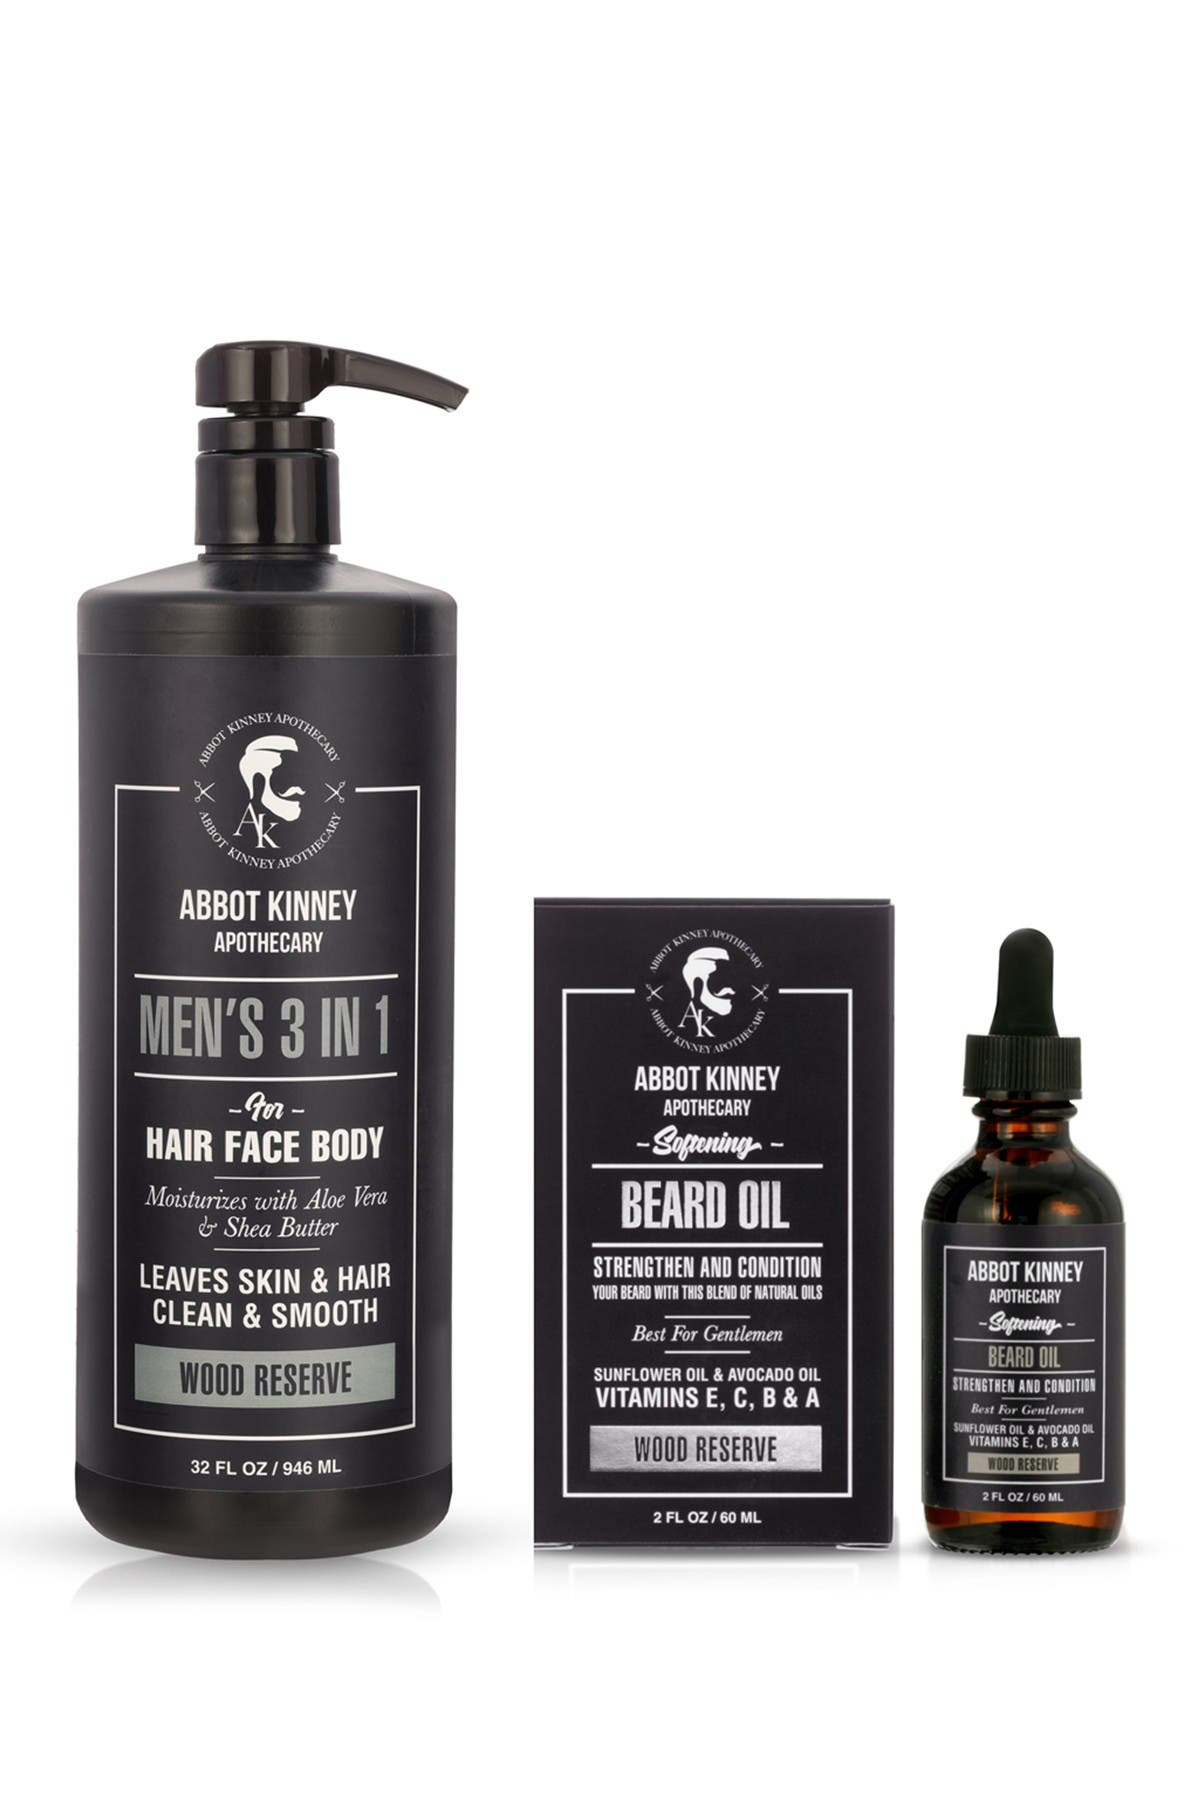 Image of Abbot Kinney Apothecary The Ultimate Men's Grooming Set in Wood Reserve Fragrance - 3in1 Hair, Face, Body Wash and Beard Oil Set